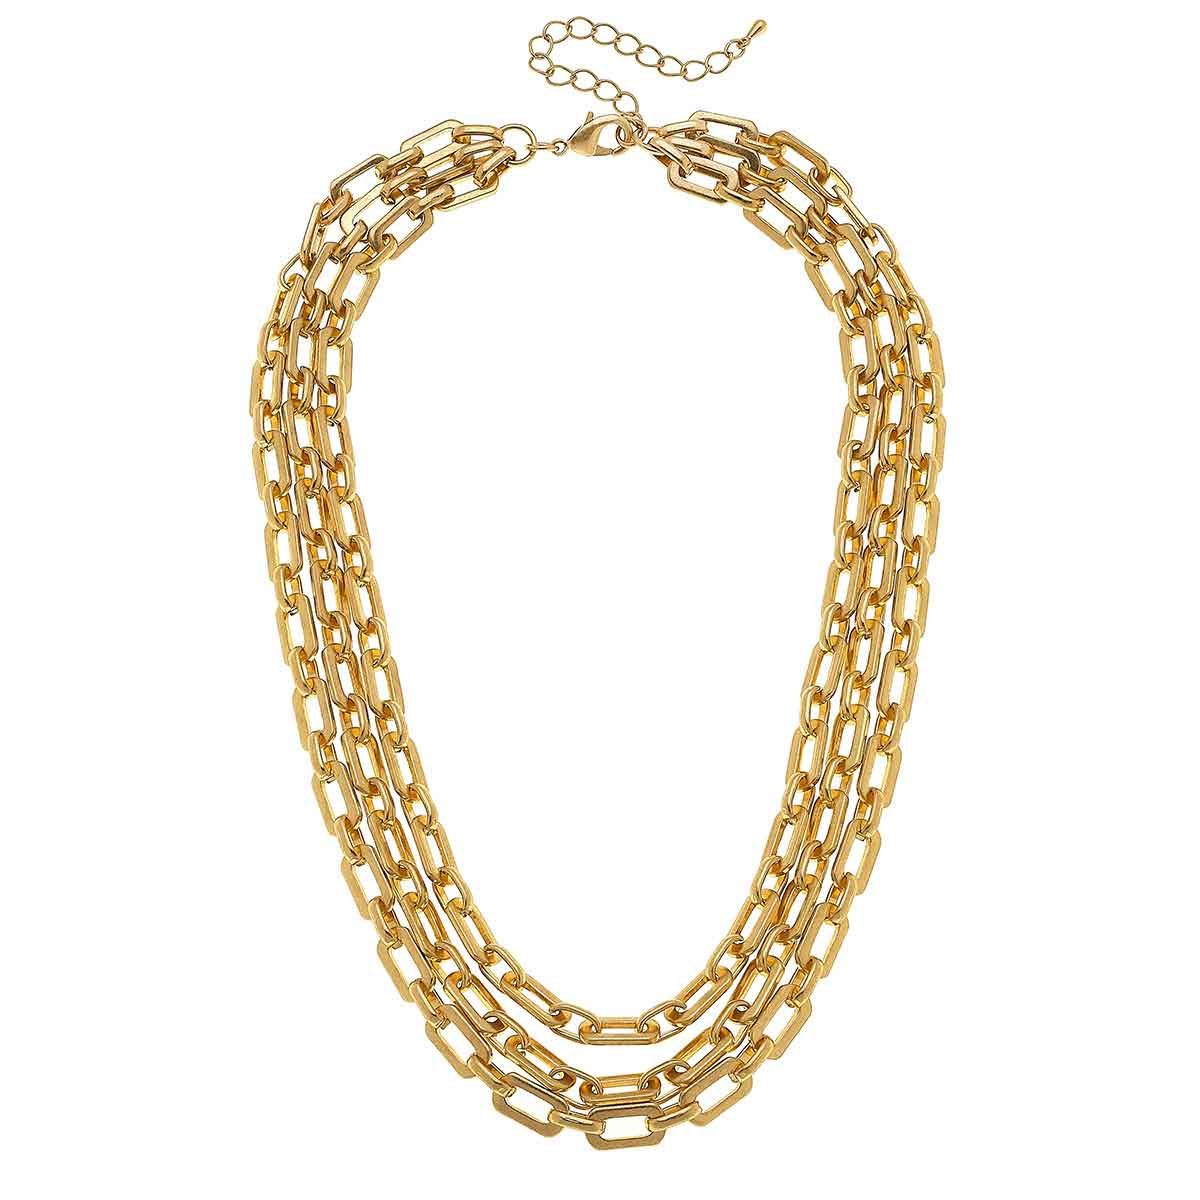 Reese 3-Row Layered Chain Necklace in Worn Gold